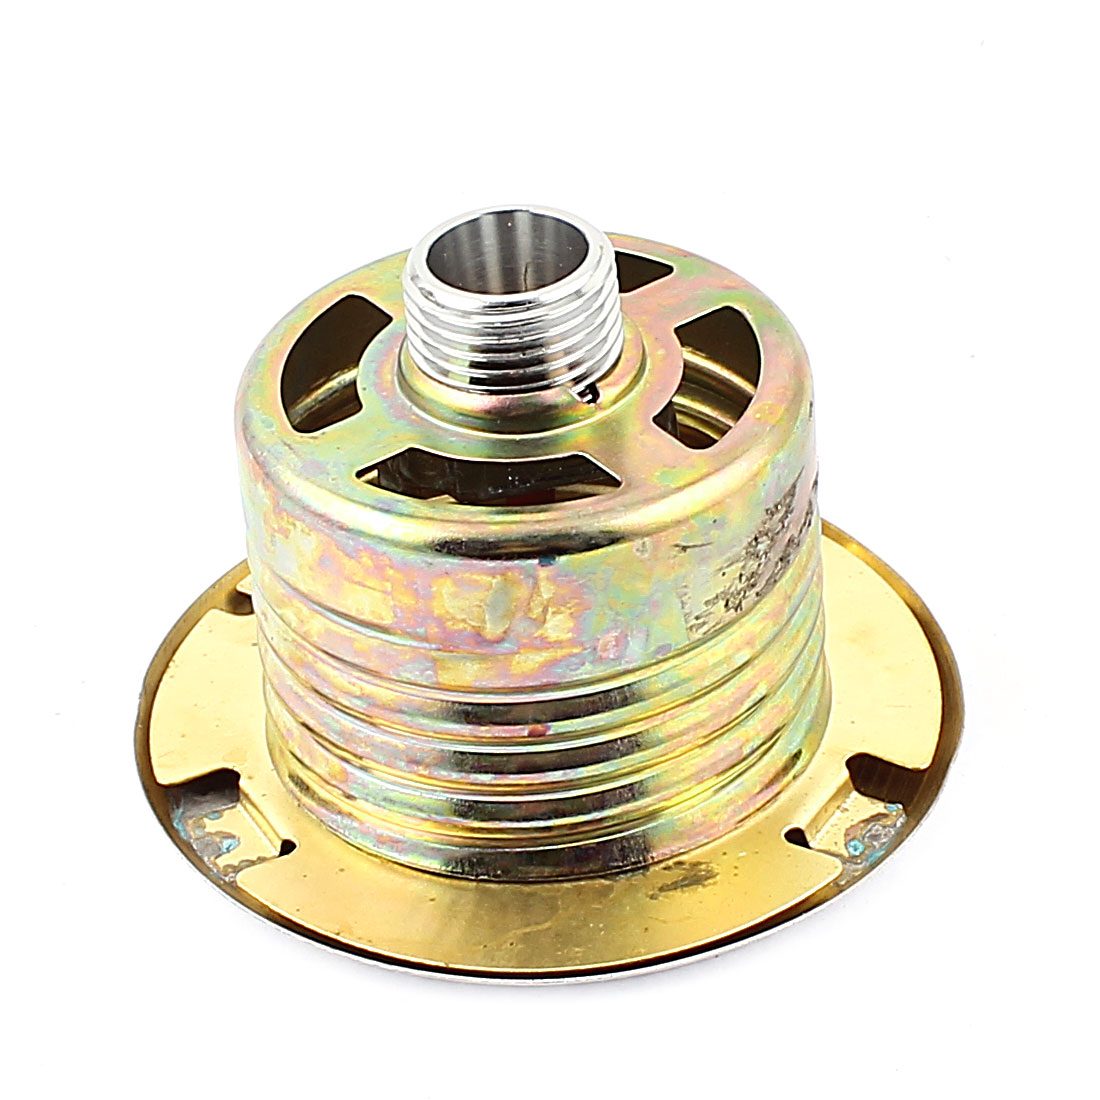 Safety System 20mm Thread Brass Tone Cover Watering Sprinkler Head